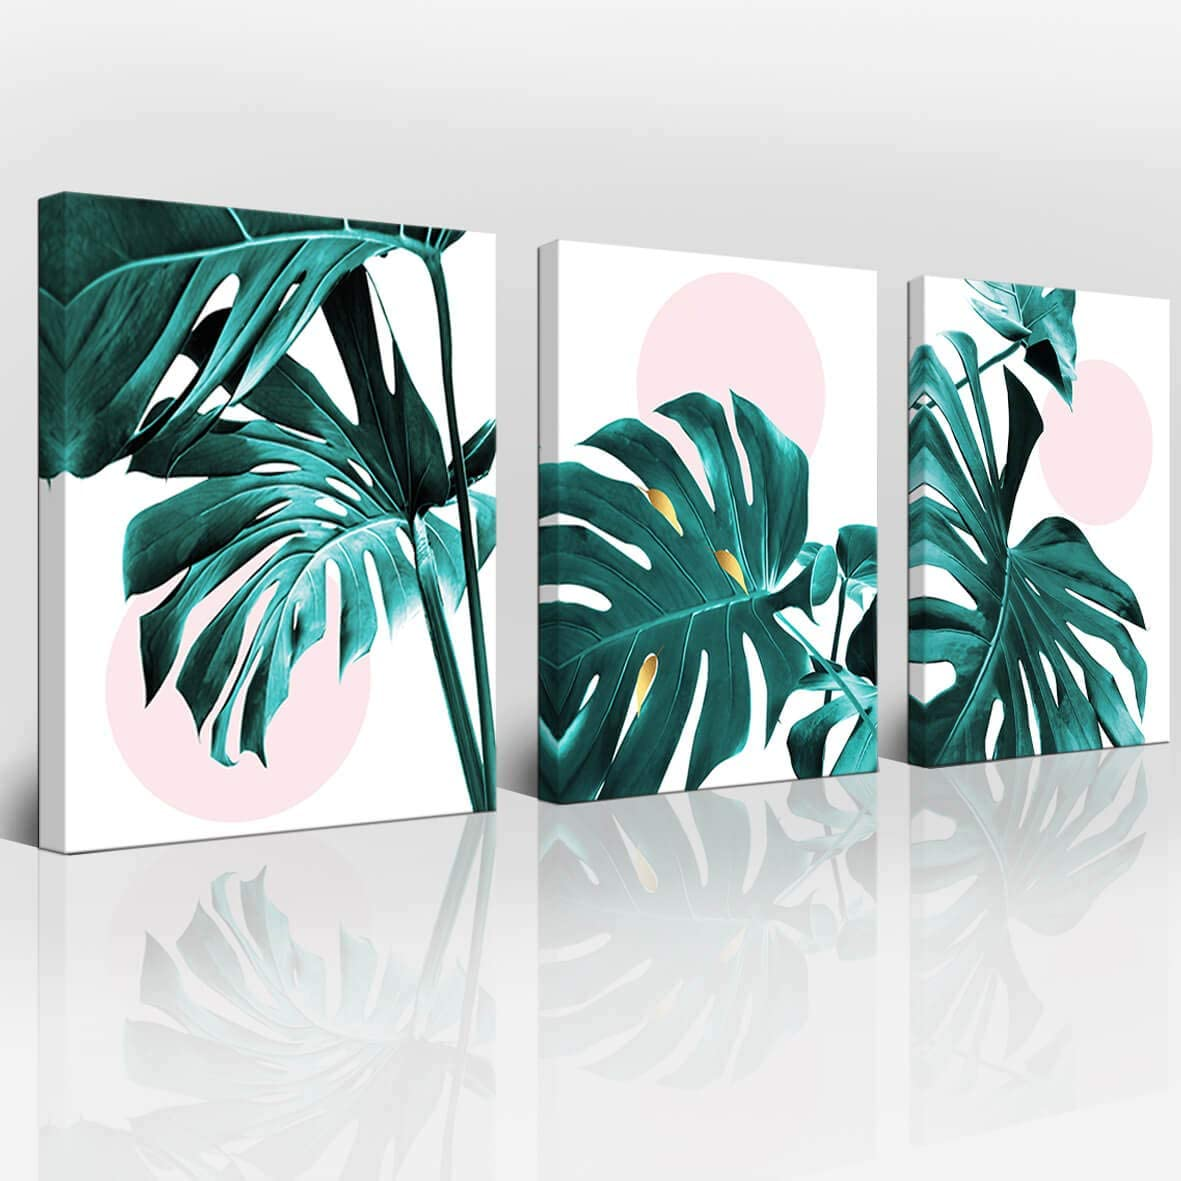 Amazon Com Wall Decoration Wall Art Bathroom Wall Decoration Bedroom Wall Art Small Fresh Leaves Plant Print Green Wall Art Canvas Bathroom Accessories Frame Wall Art Plant Wall Decoration 3 Panels Home Art